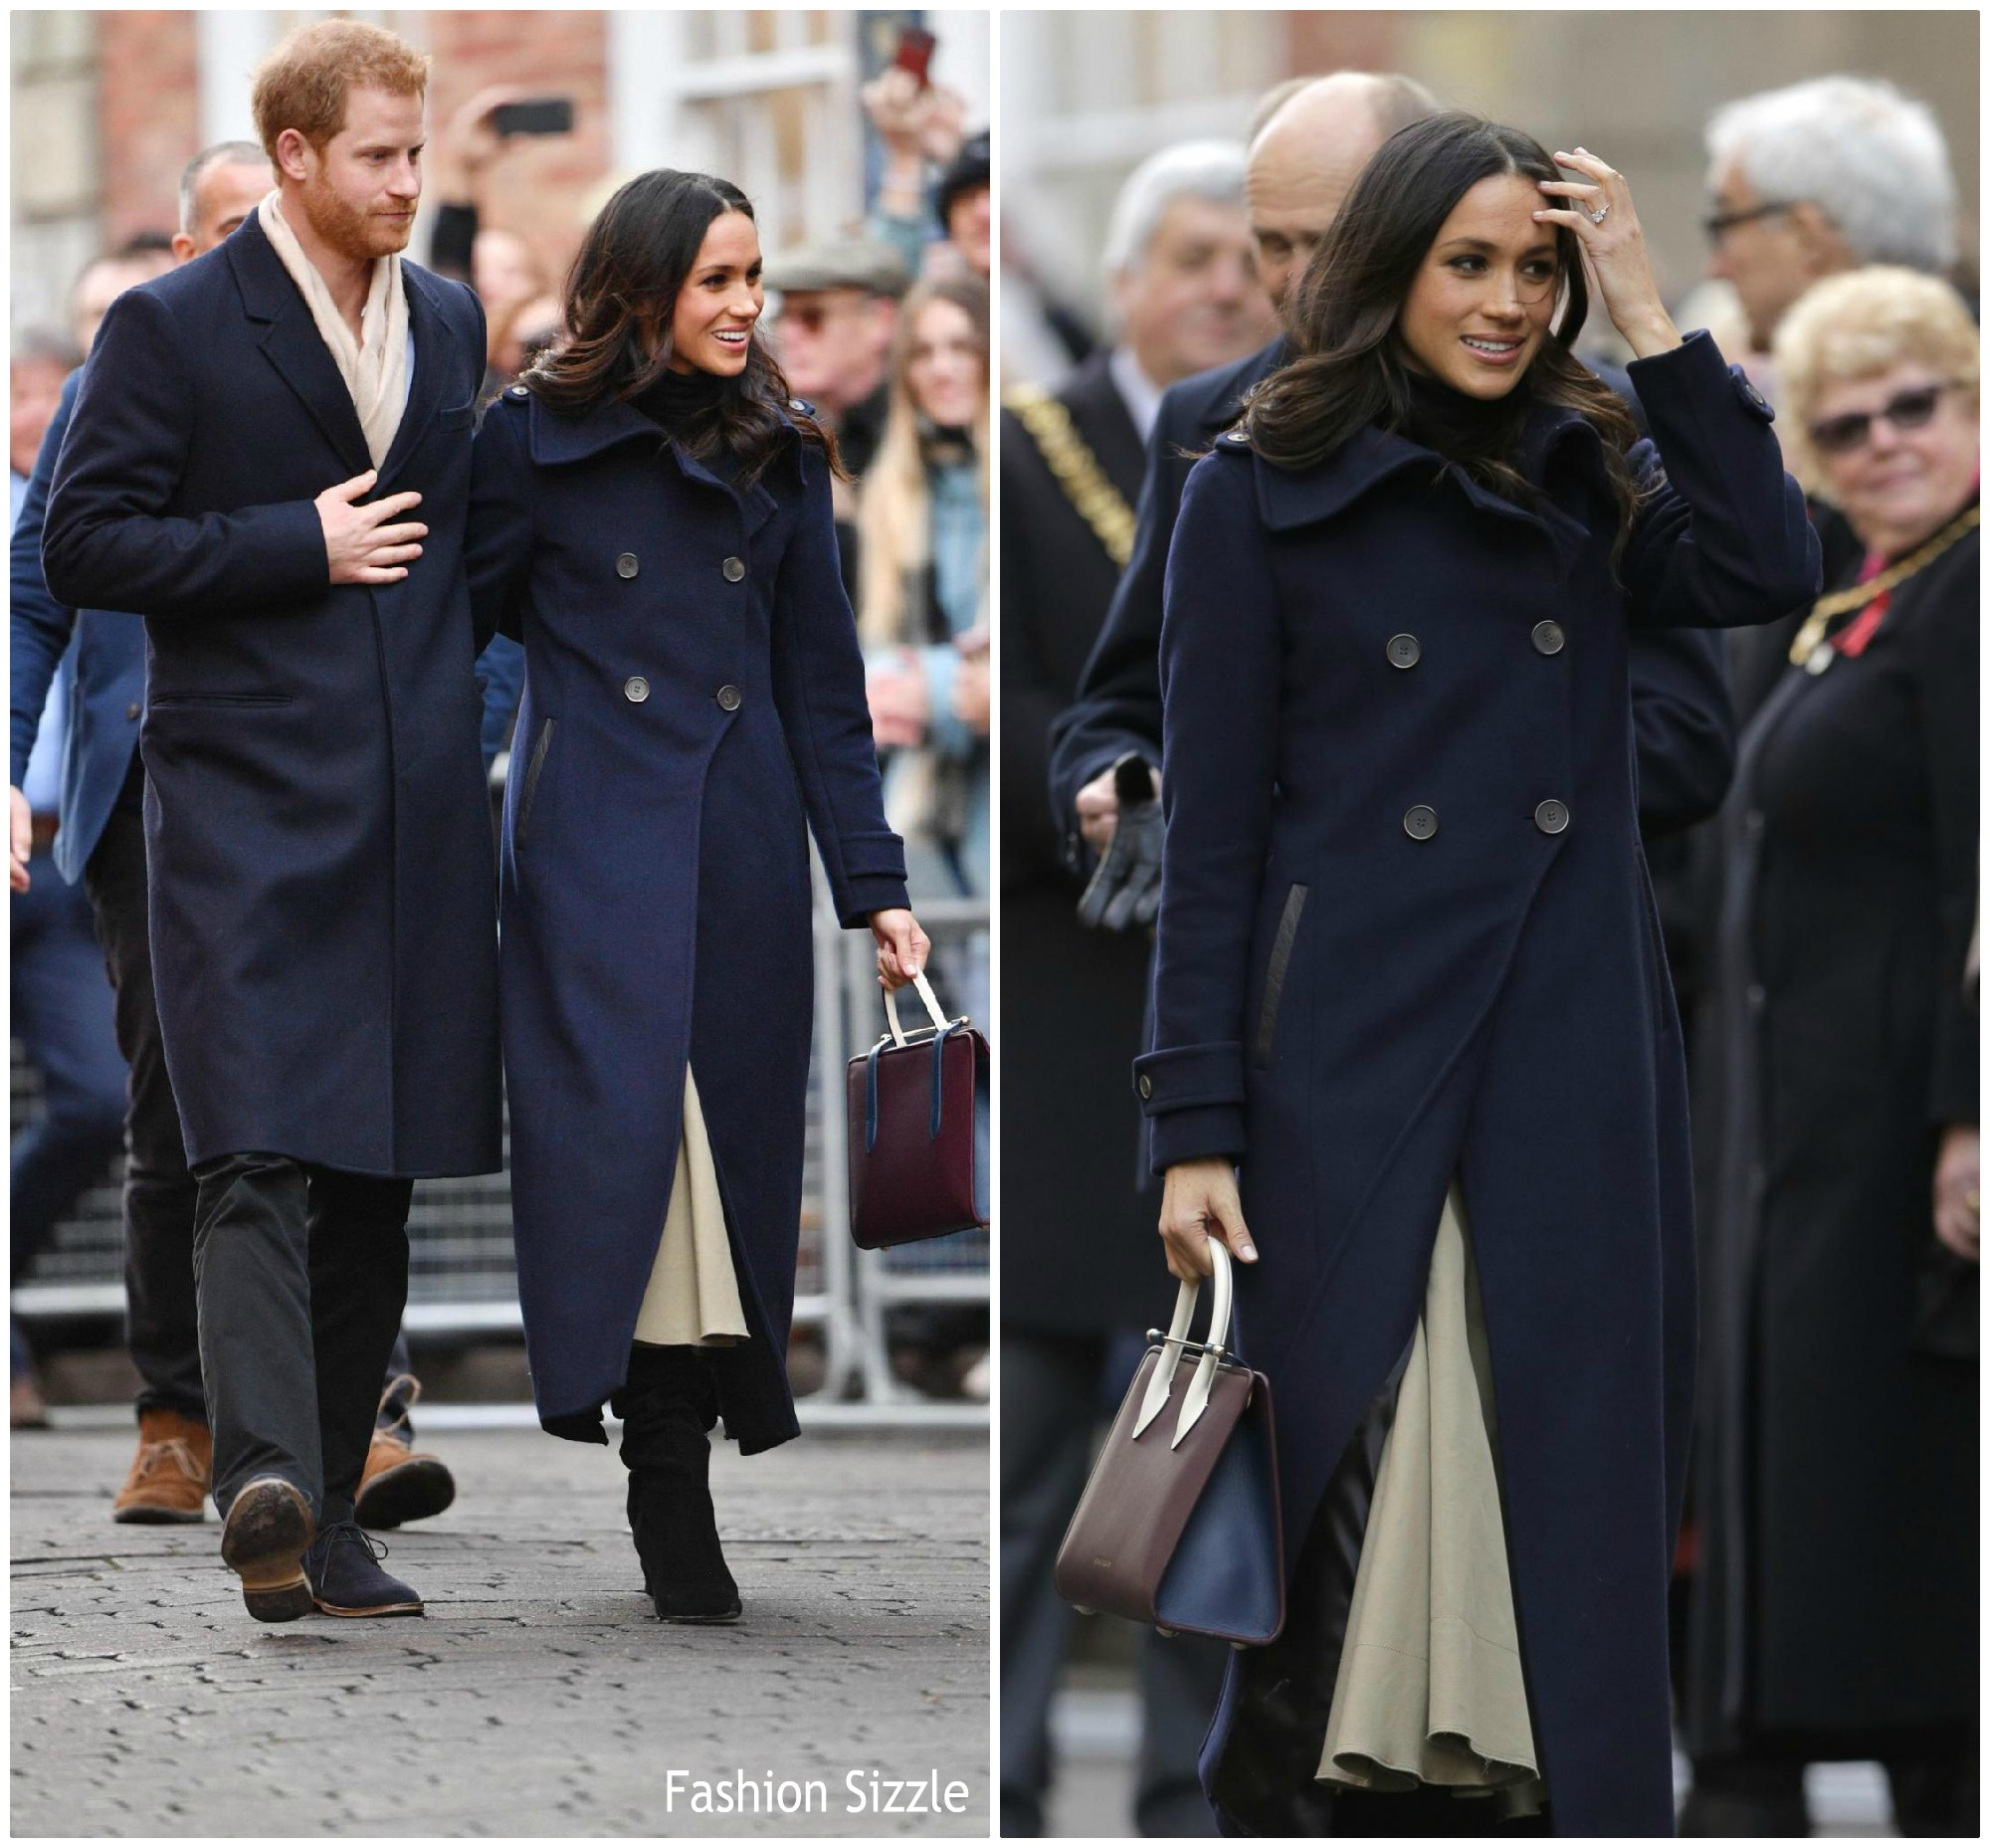 meghan-markle-in-mackage-wolford-joseph-for-her-first-official-royal-engagement